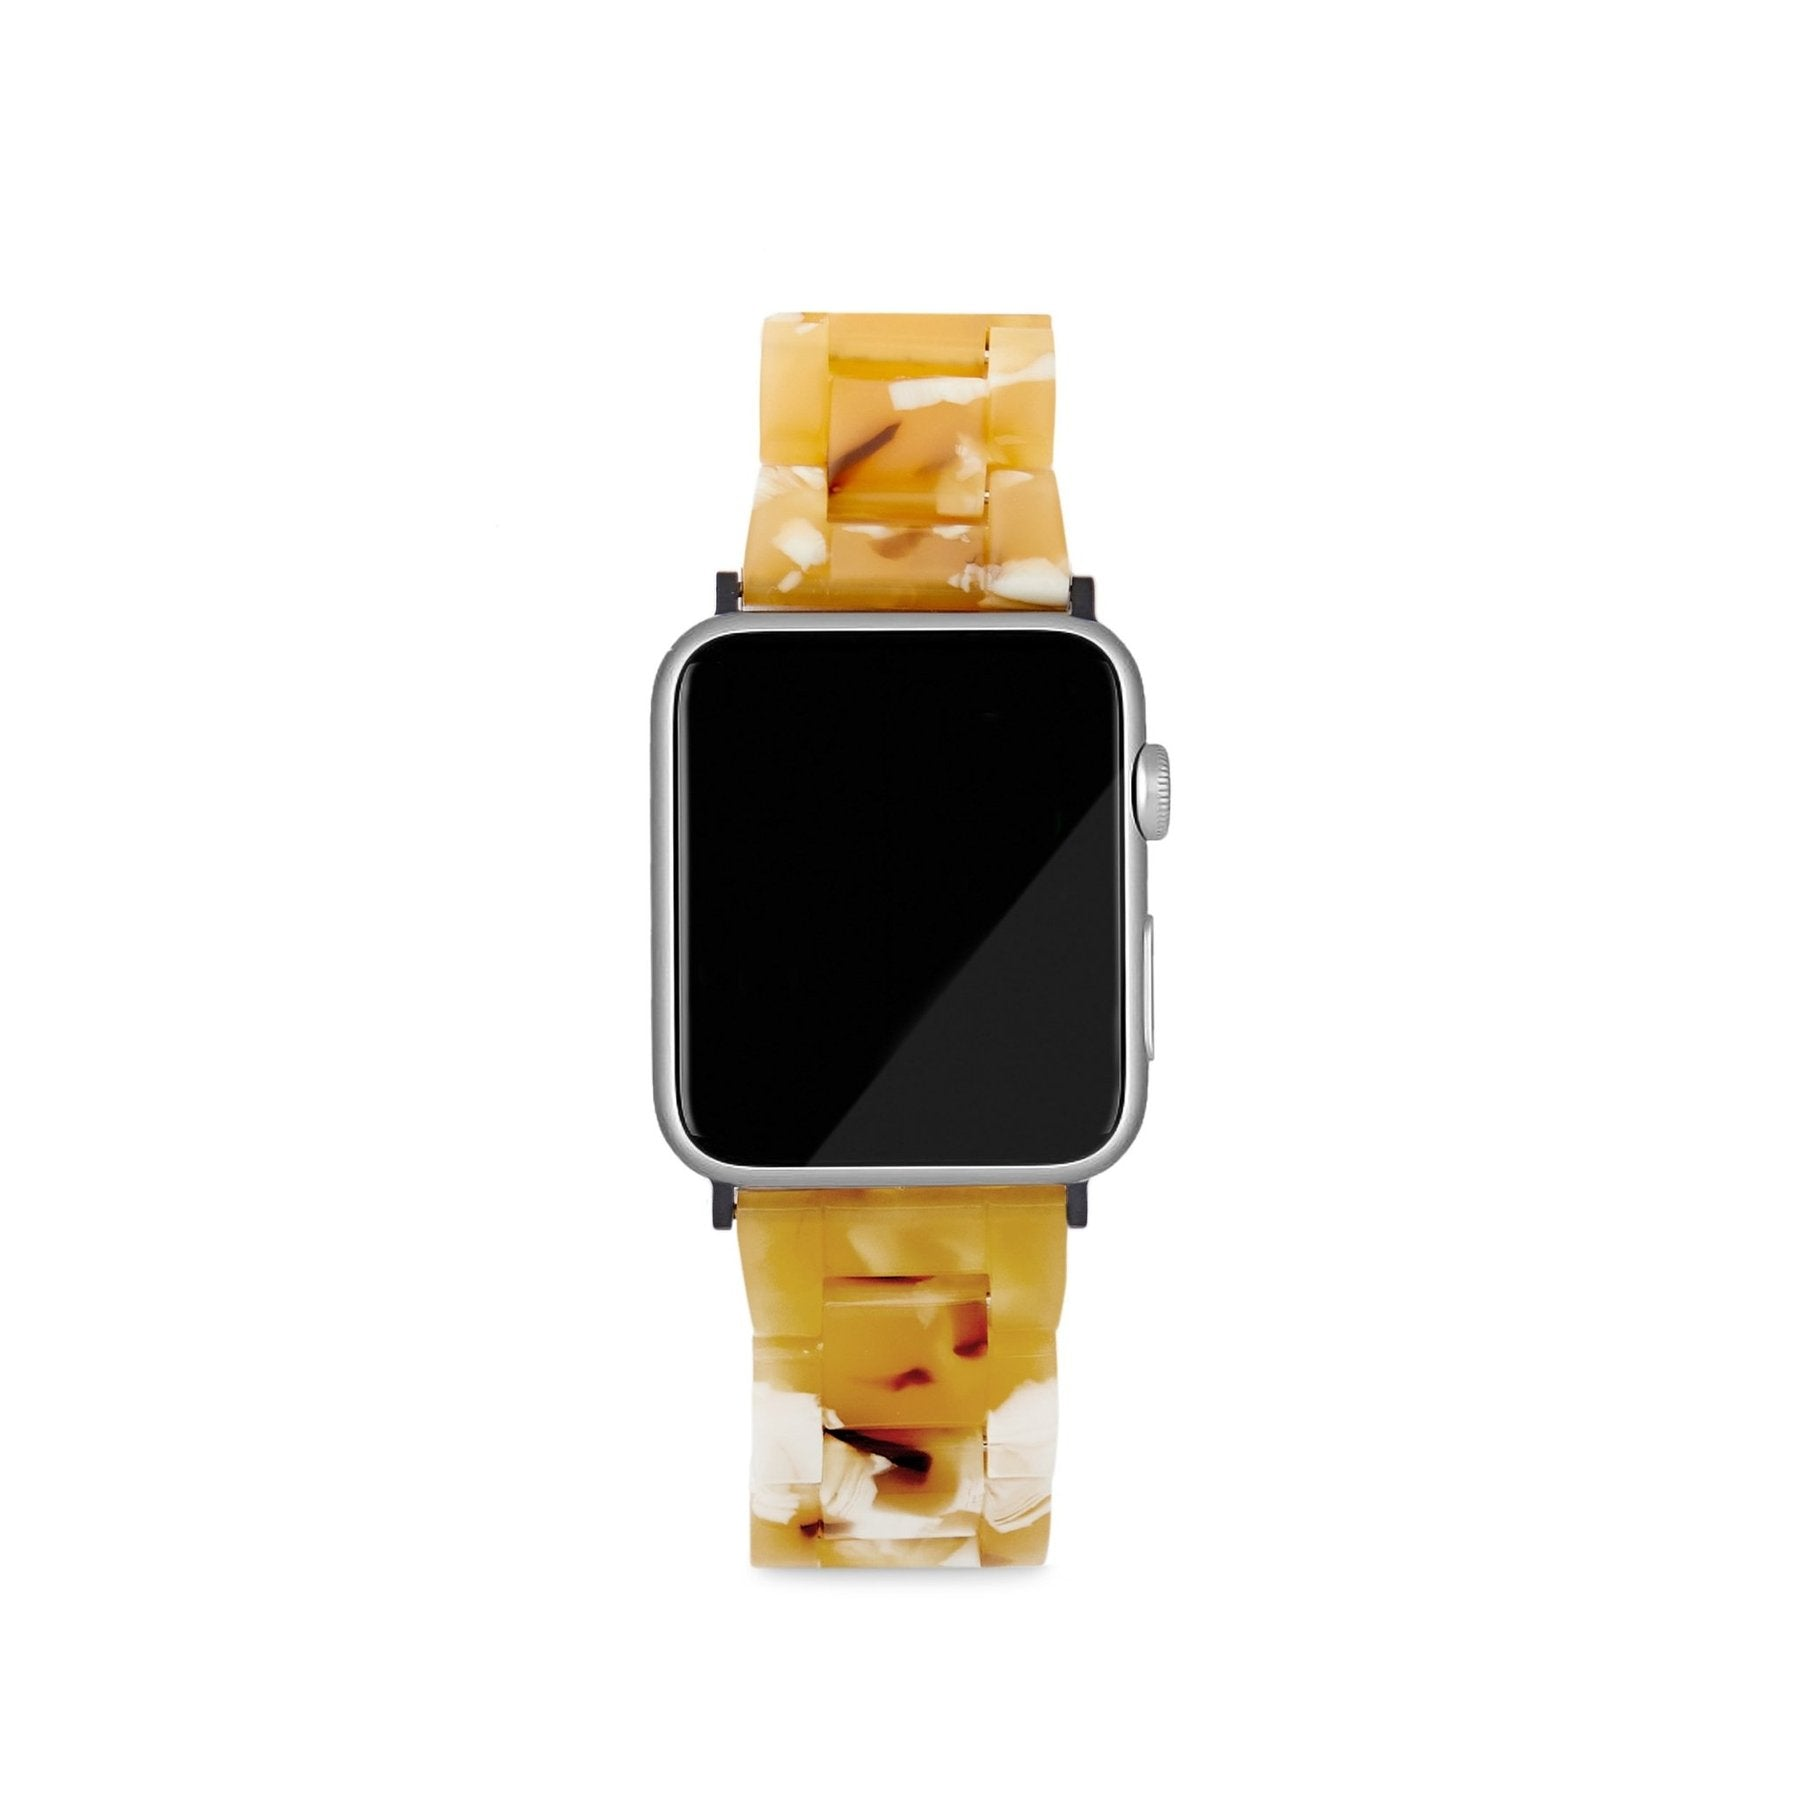 Machete - Apple Watch Band (Mango Tortoise)